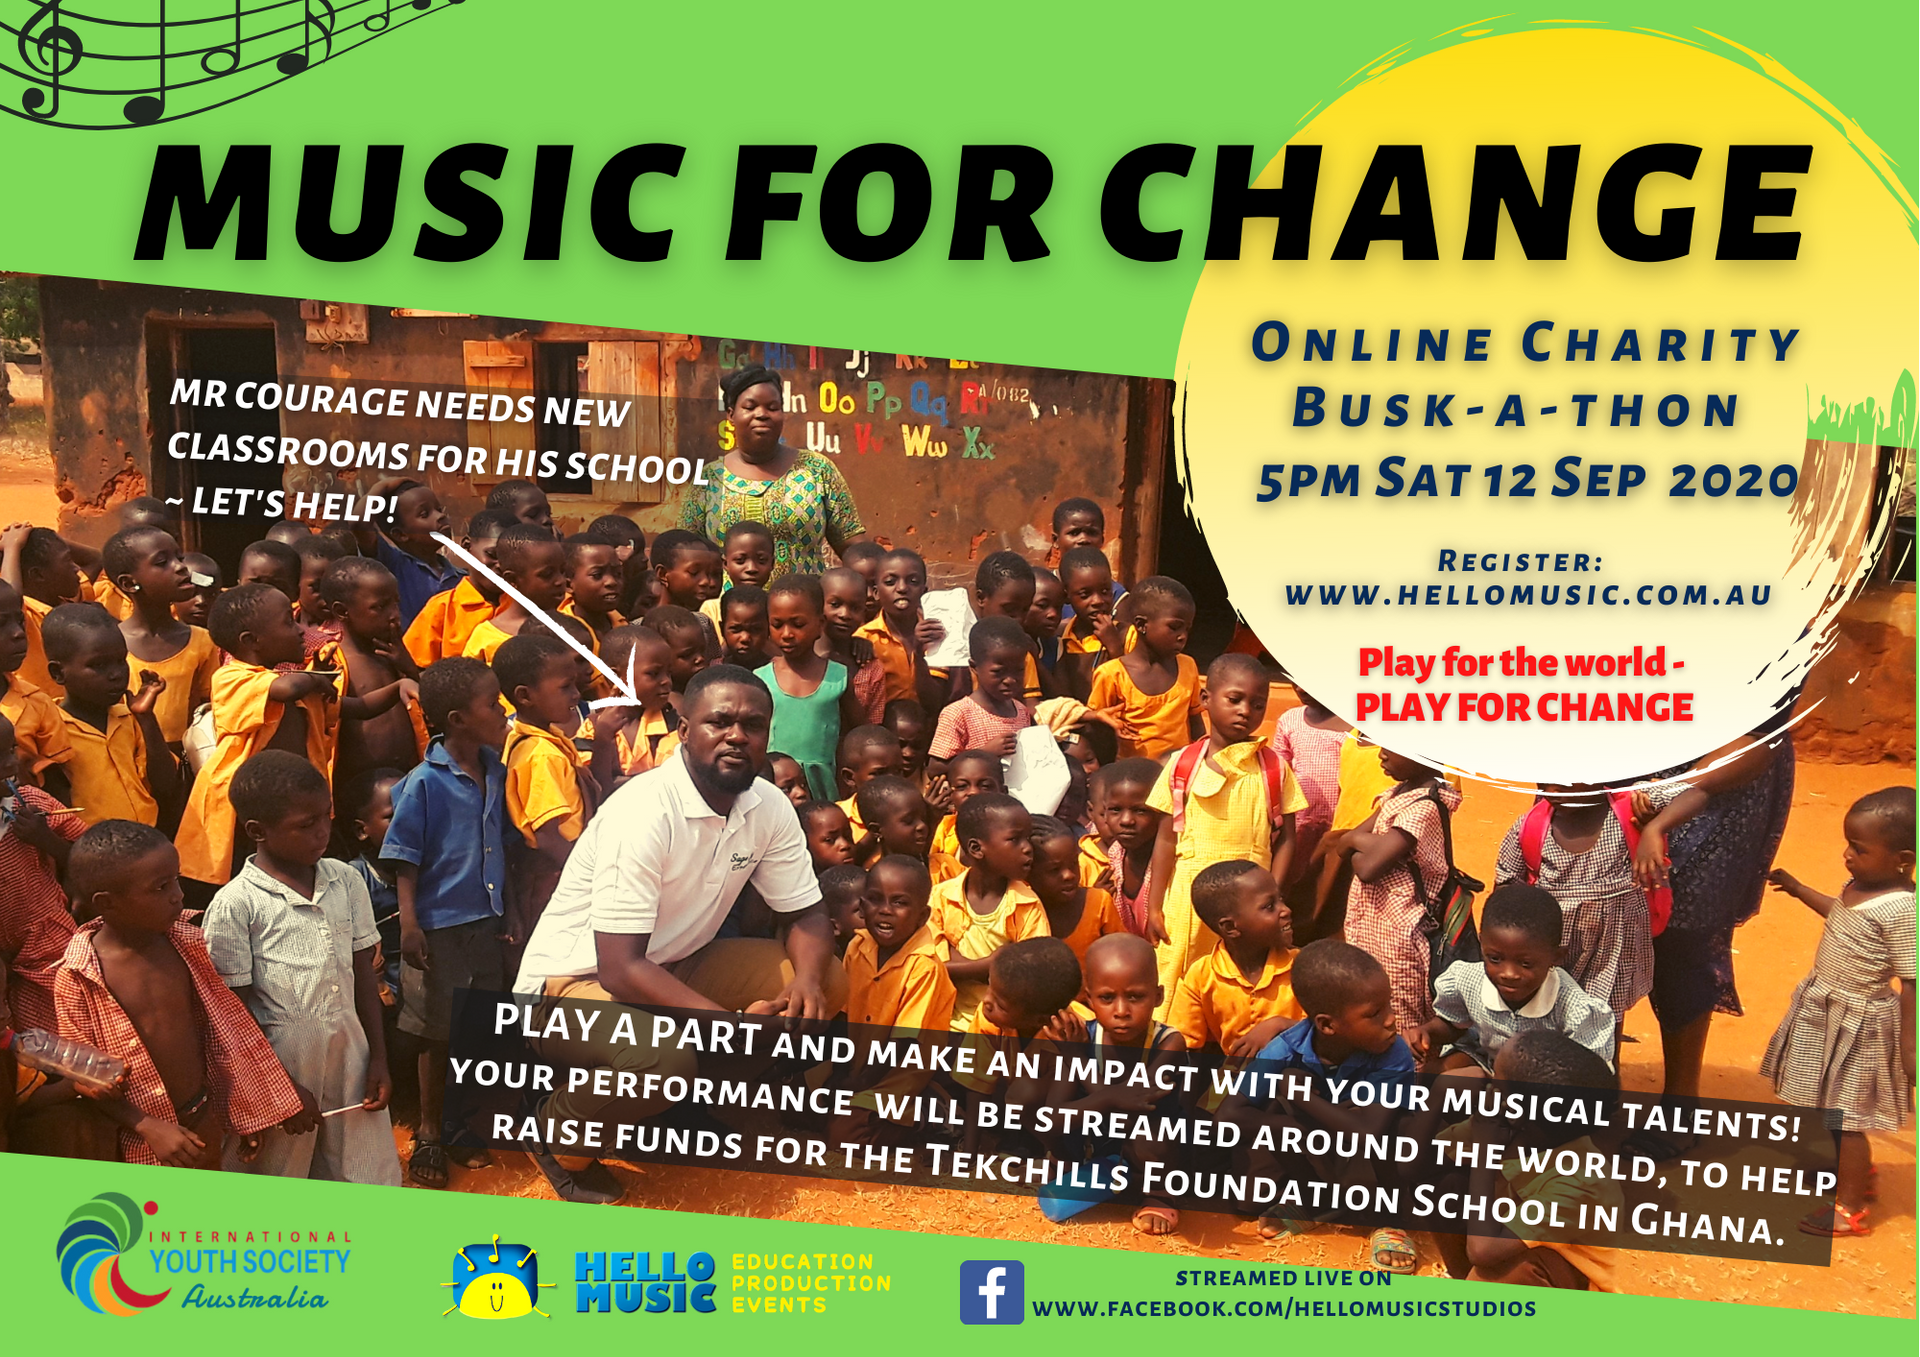 Charity Music Busk-a-thon